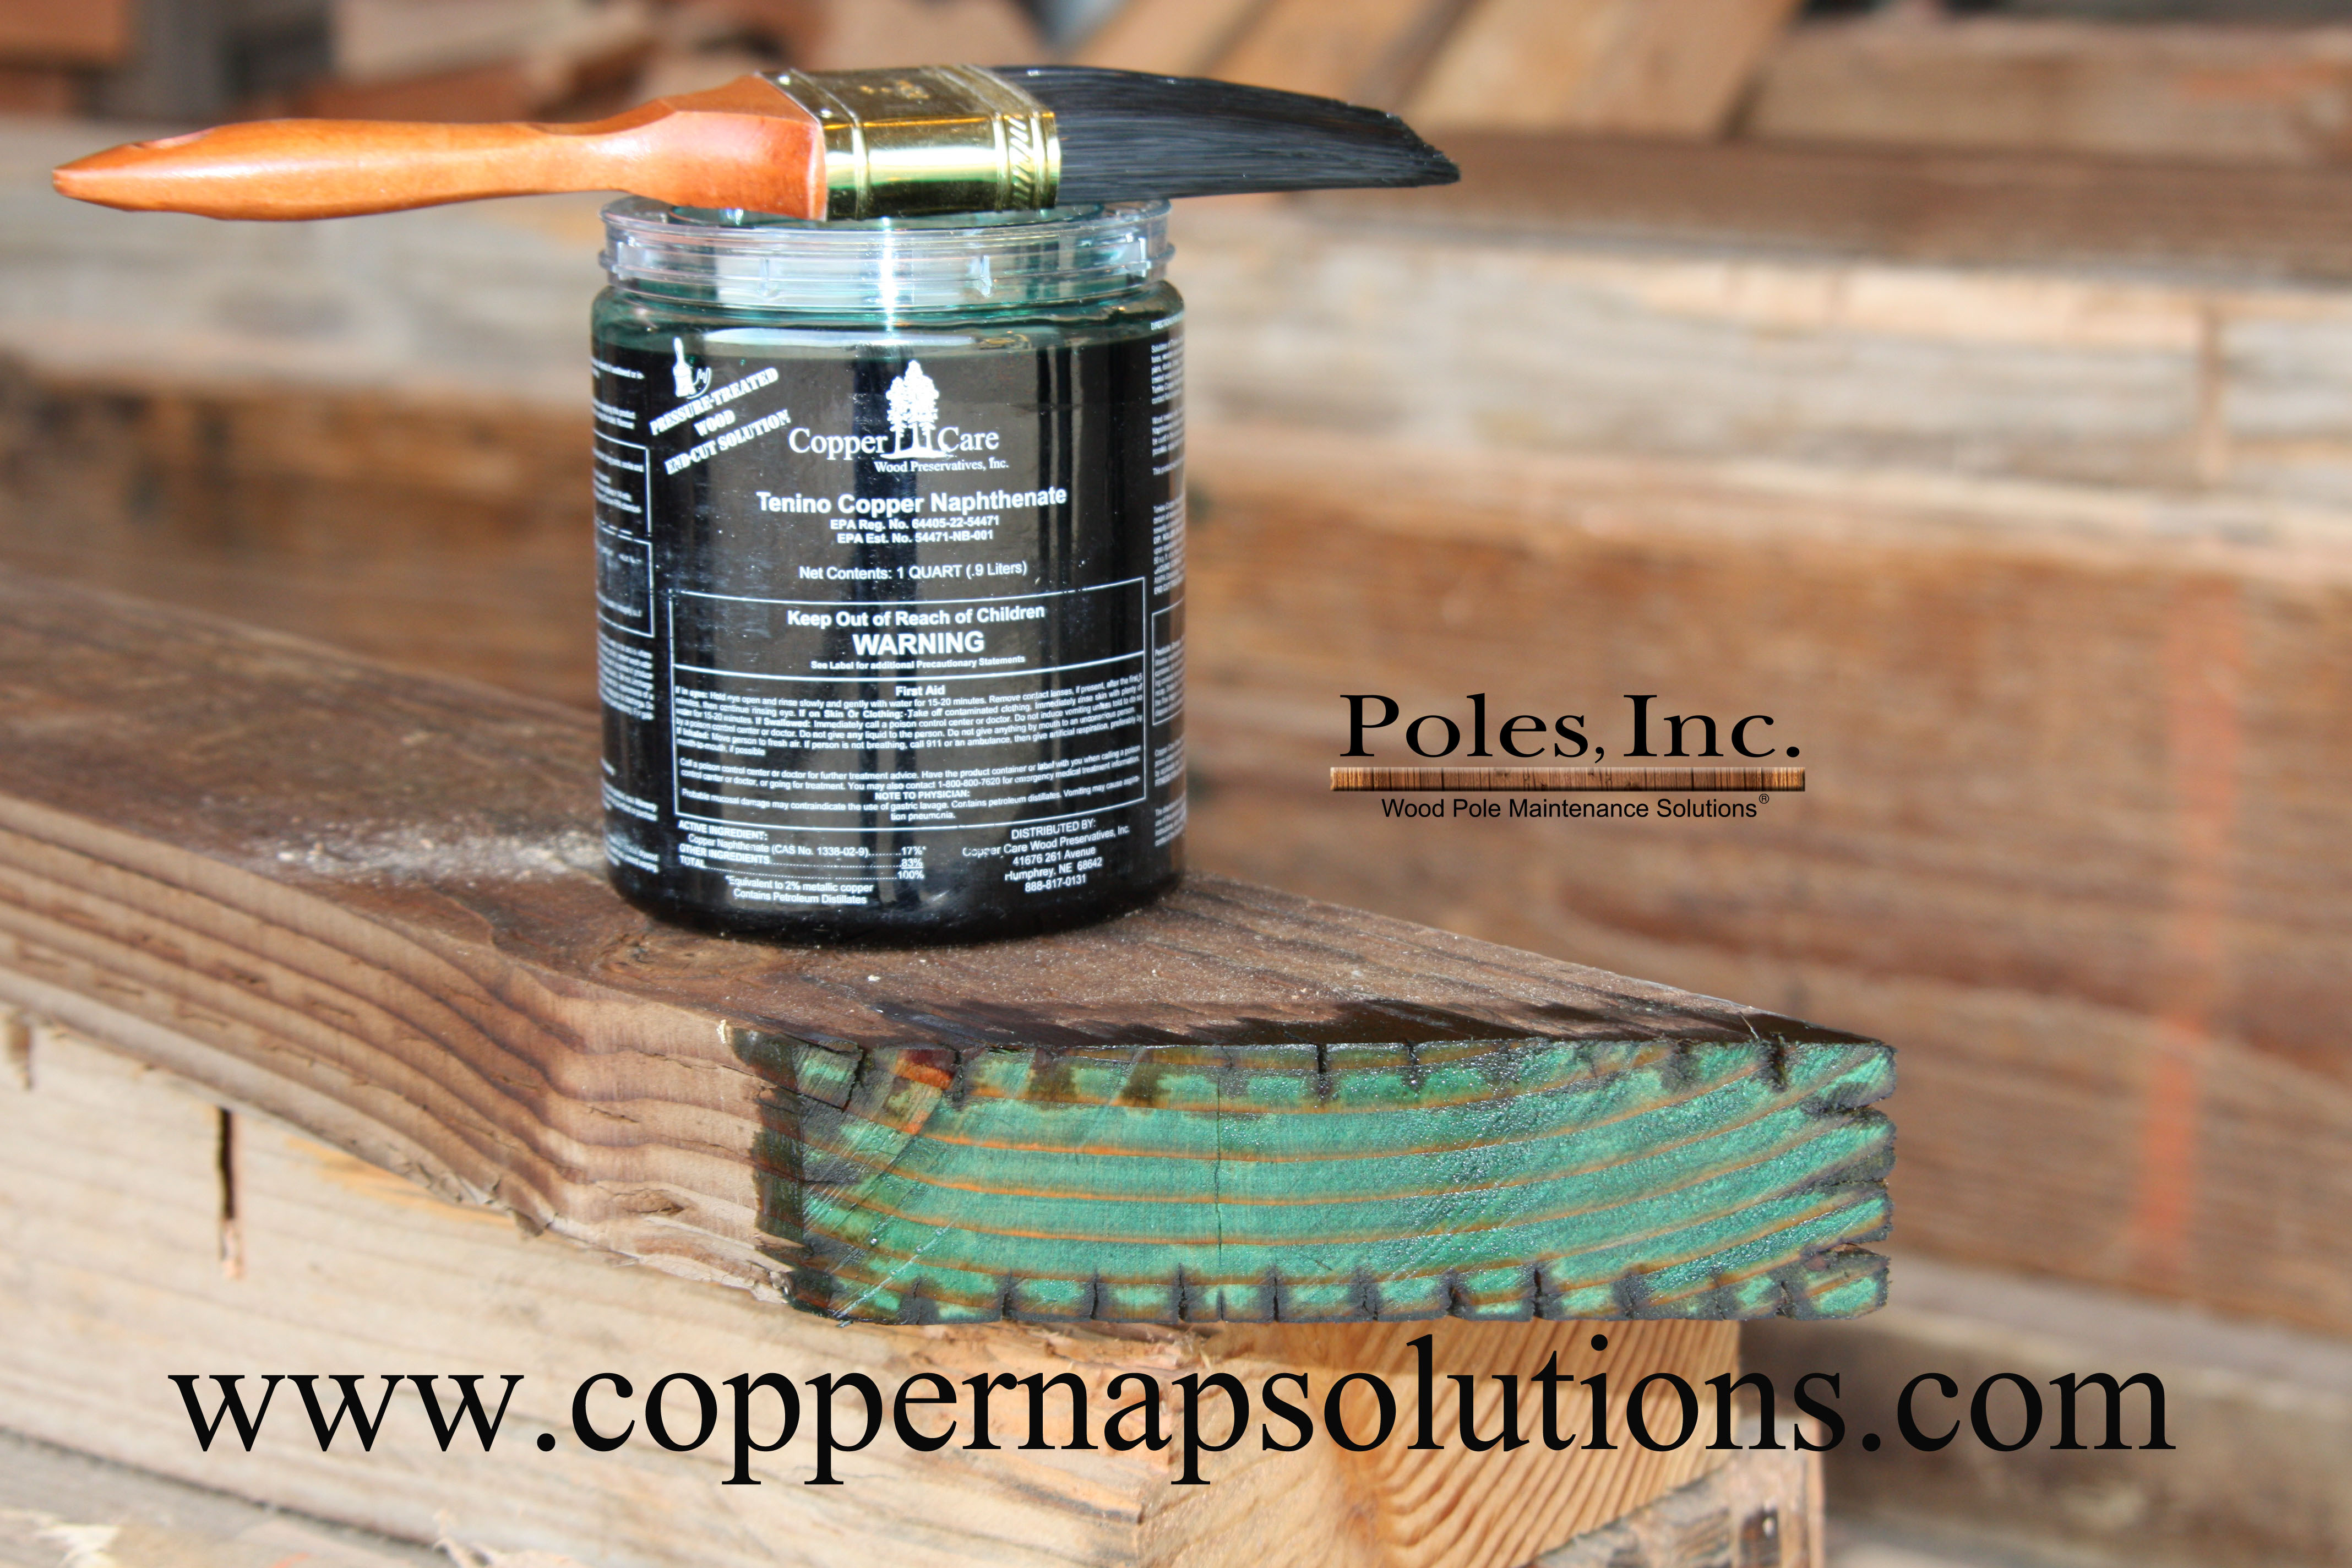 coppernapsolutions.com